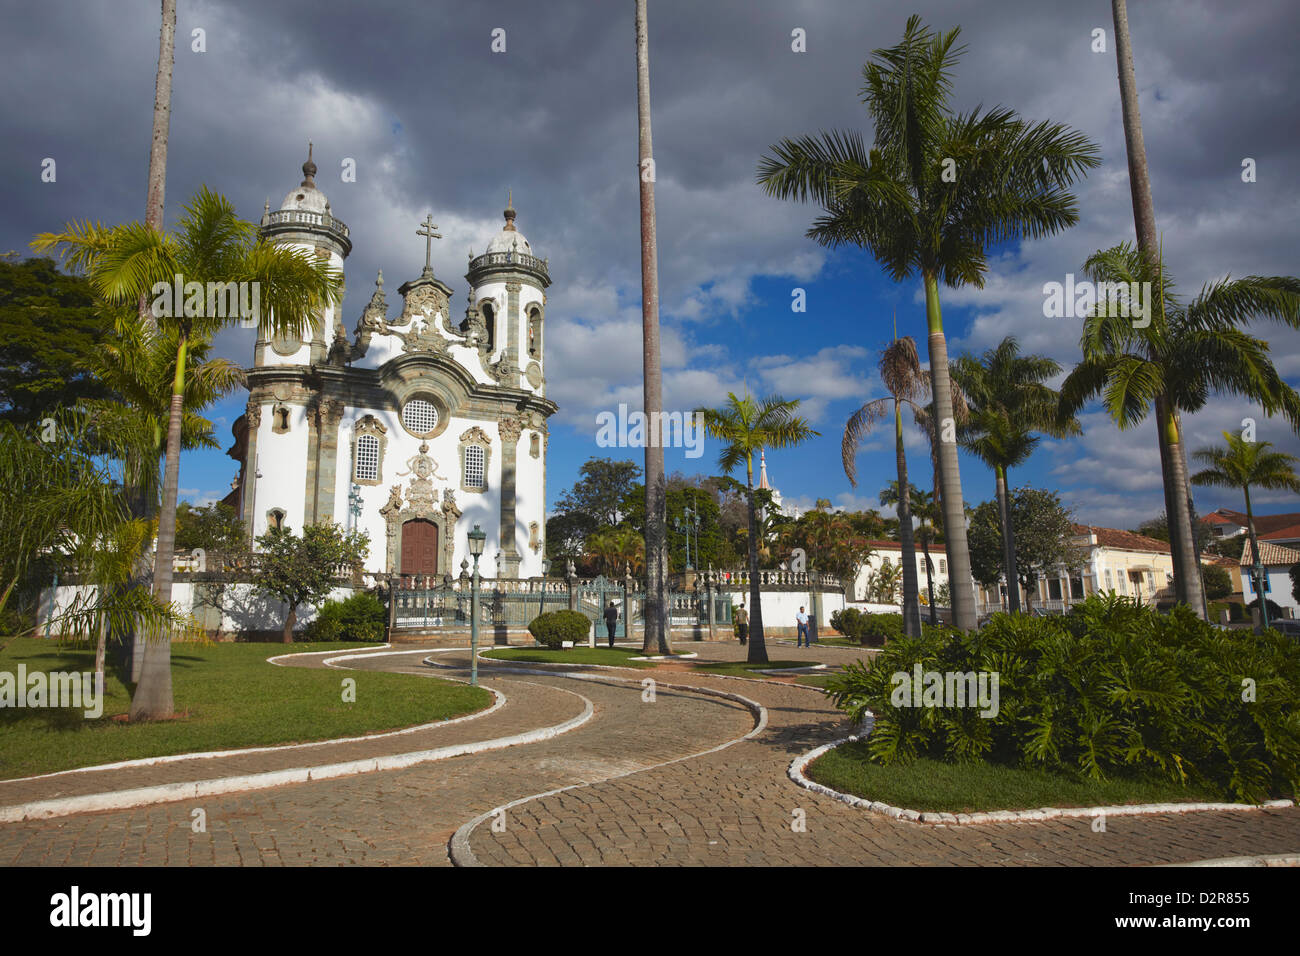 Sao Francisco de Assis (St. Francis of Assisi) Church, Sao Joao del Rei, Minas Gerais, Brazil, South America - Stock Image